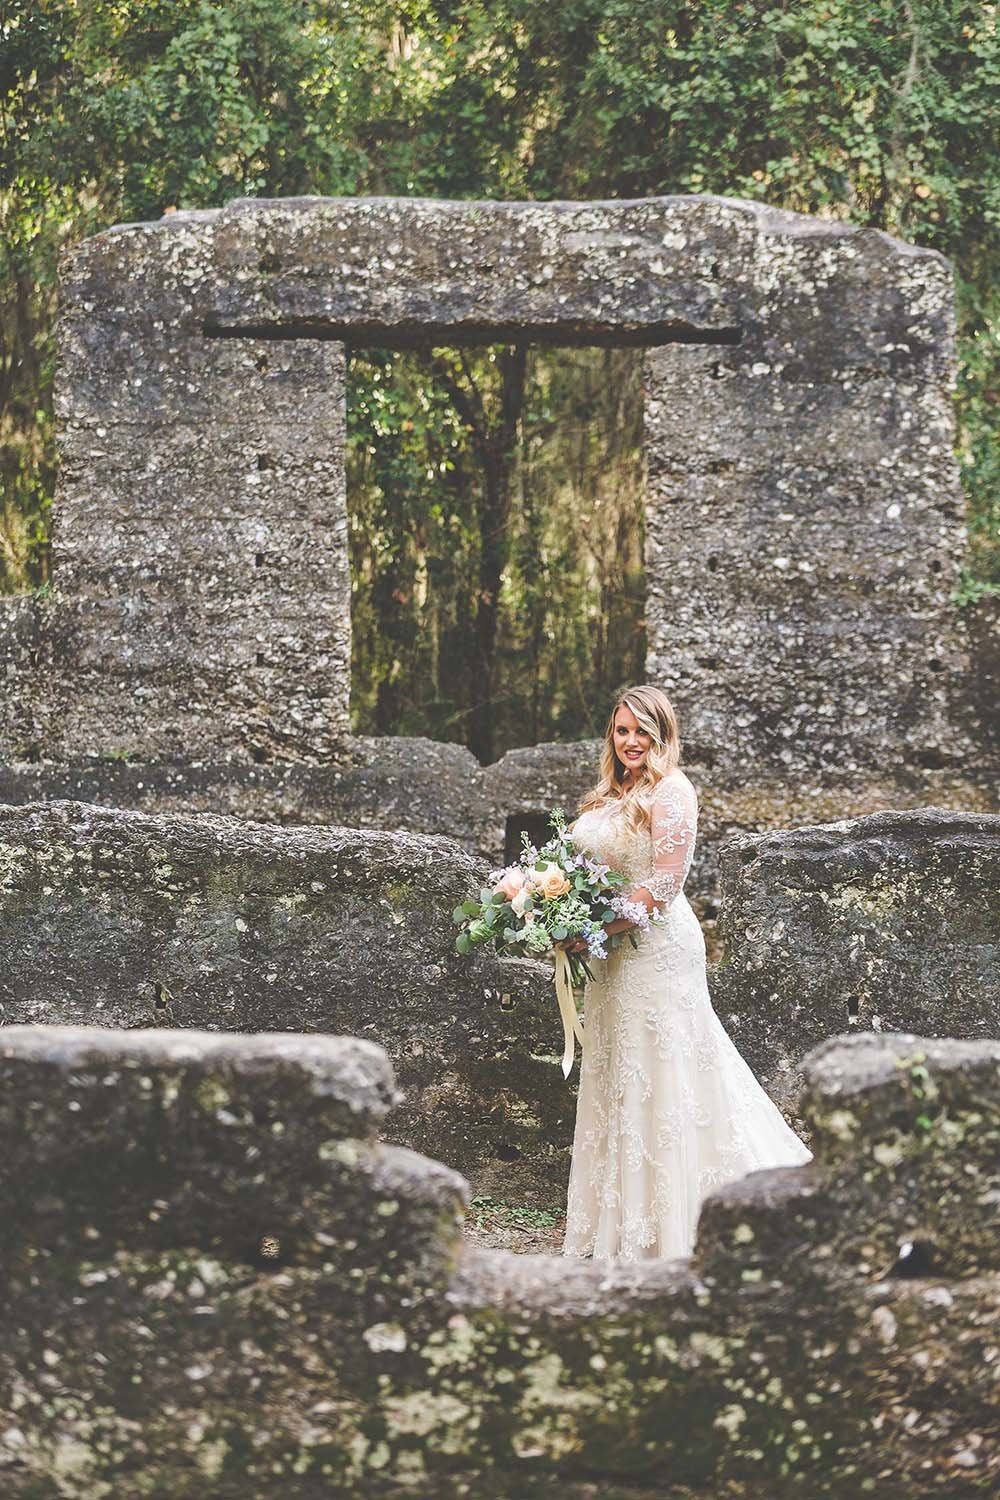 bridal-portrait-revalation-design-bouquet-ruins-inspiration-lace-wedding-dress-breaking-tradition-jacksonville-fl